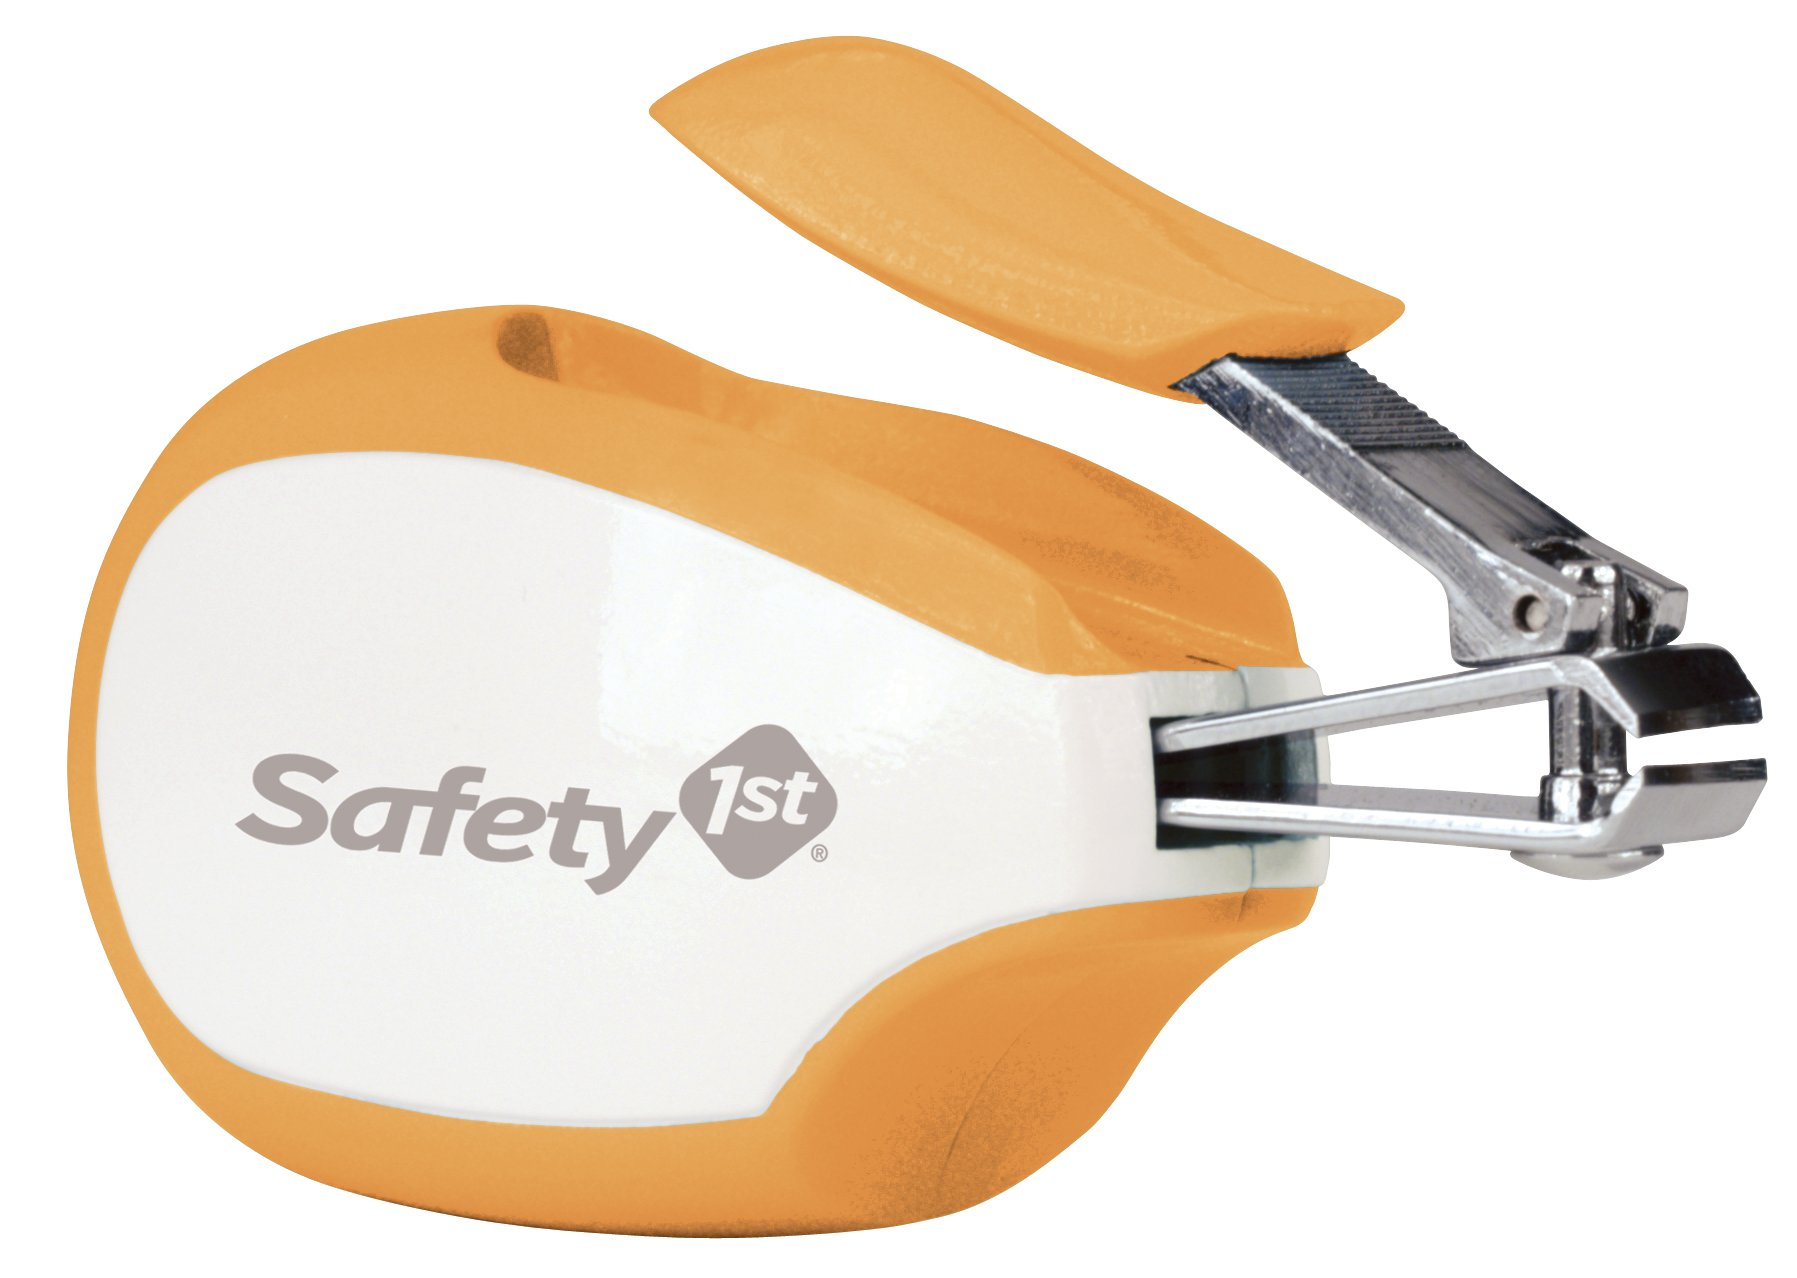 Safety 1st Steady Grip Infant Nail Clipper (Colors May Vary) 2 Designed for baby's nails - Nail clipper is specially designed for trimming tiny finger and toe nails Easy to hold & use - Extra-large, soft-touch handle provides a more comfortable and secure grip Safe for all ages - Nail clippers can be used from newborns to toddlers